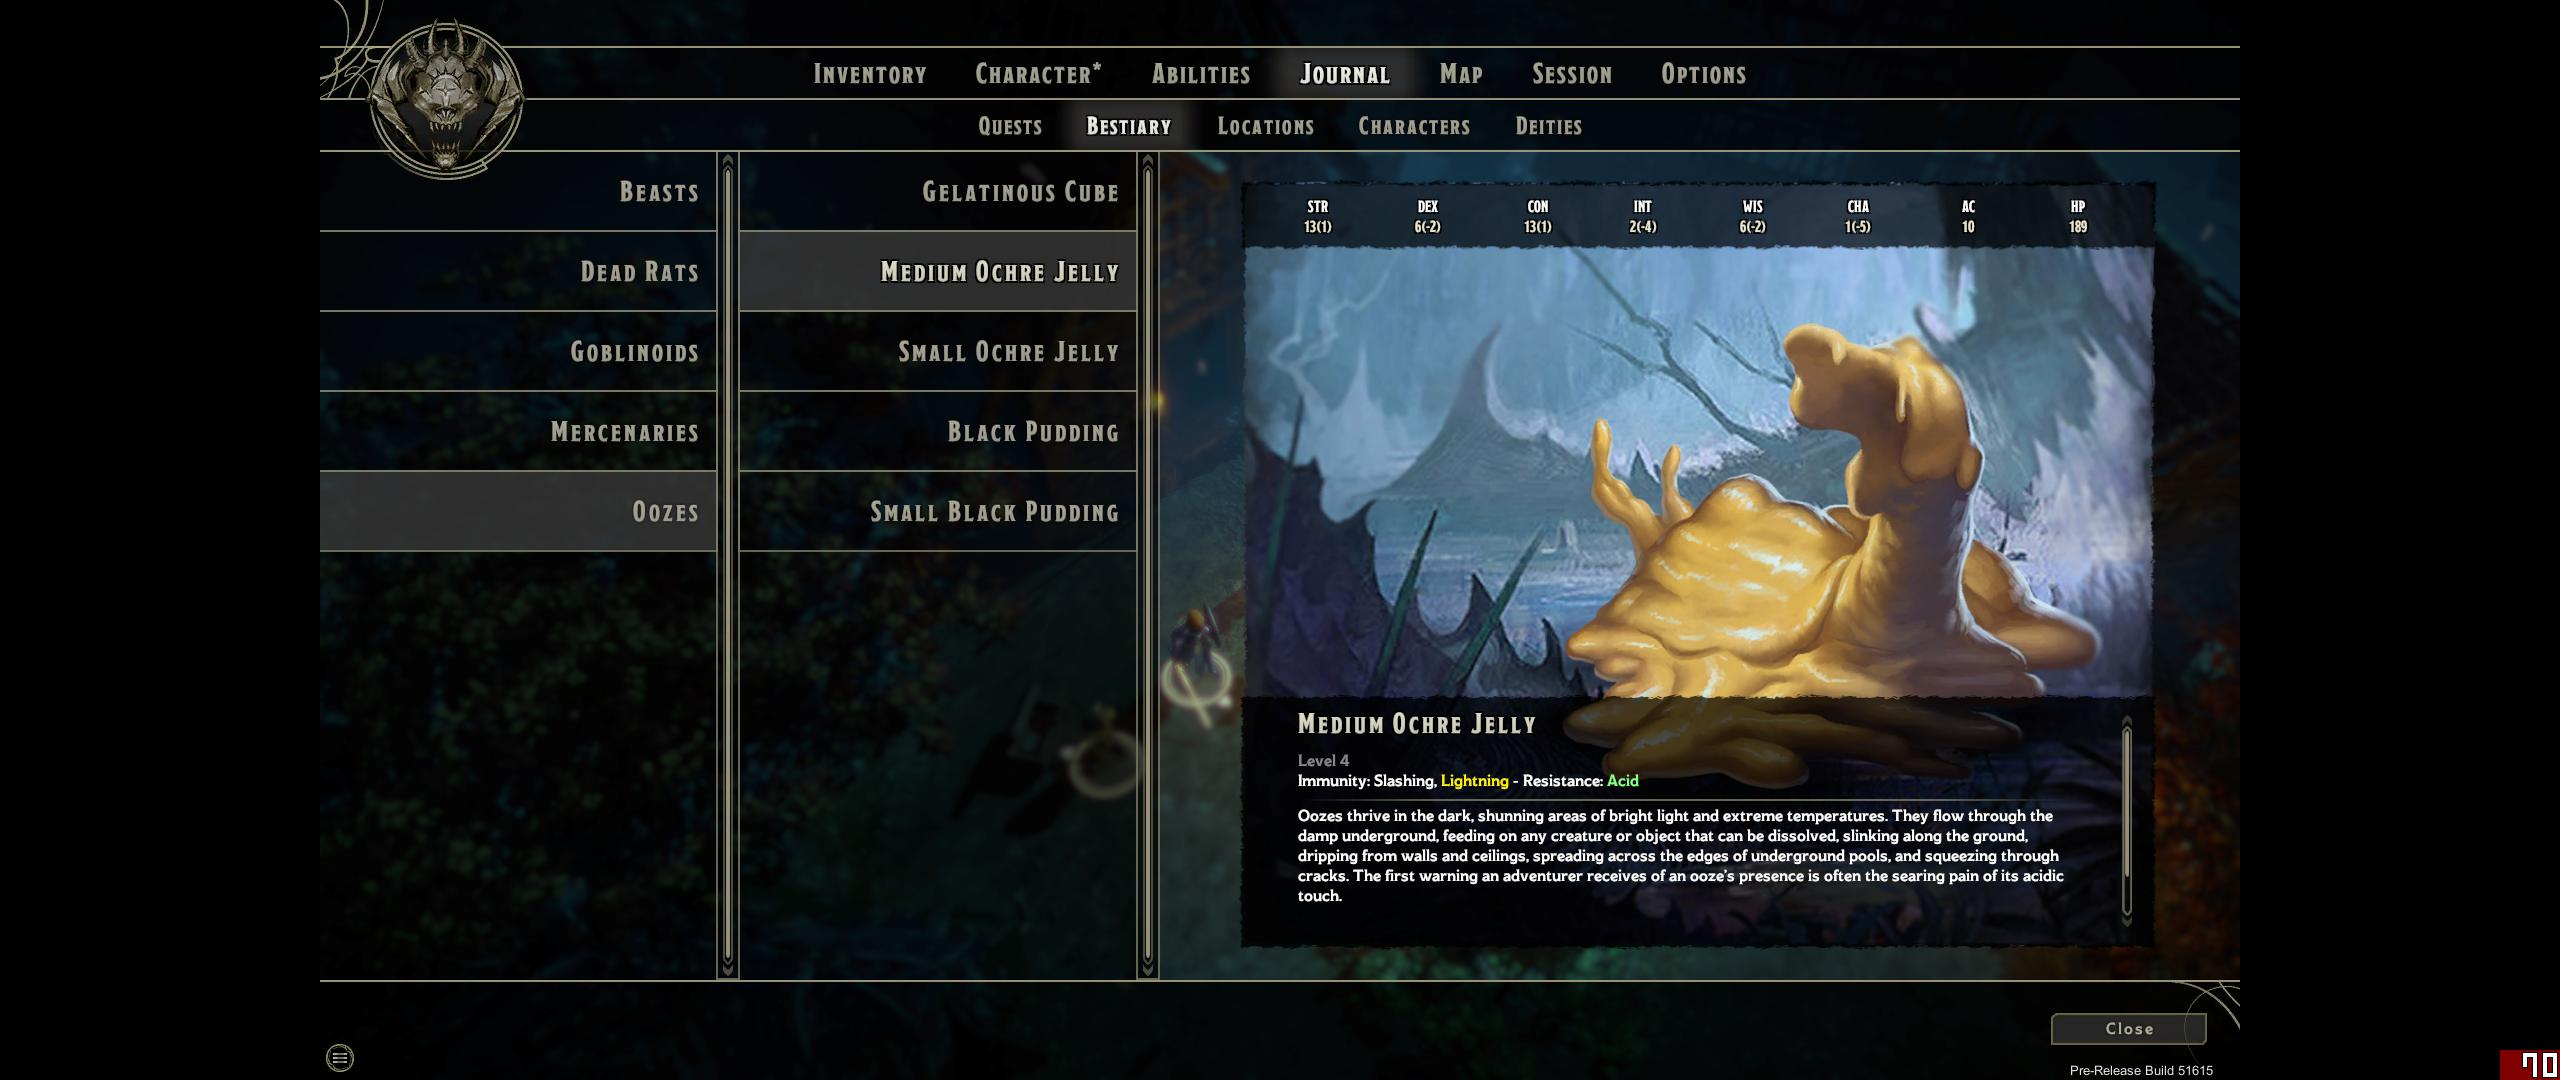 The Sword Coast Legends team really likes oozes. One early dungeon has three different types.